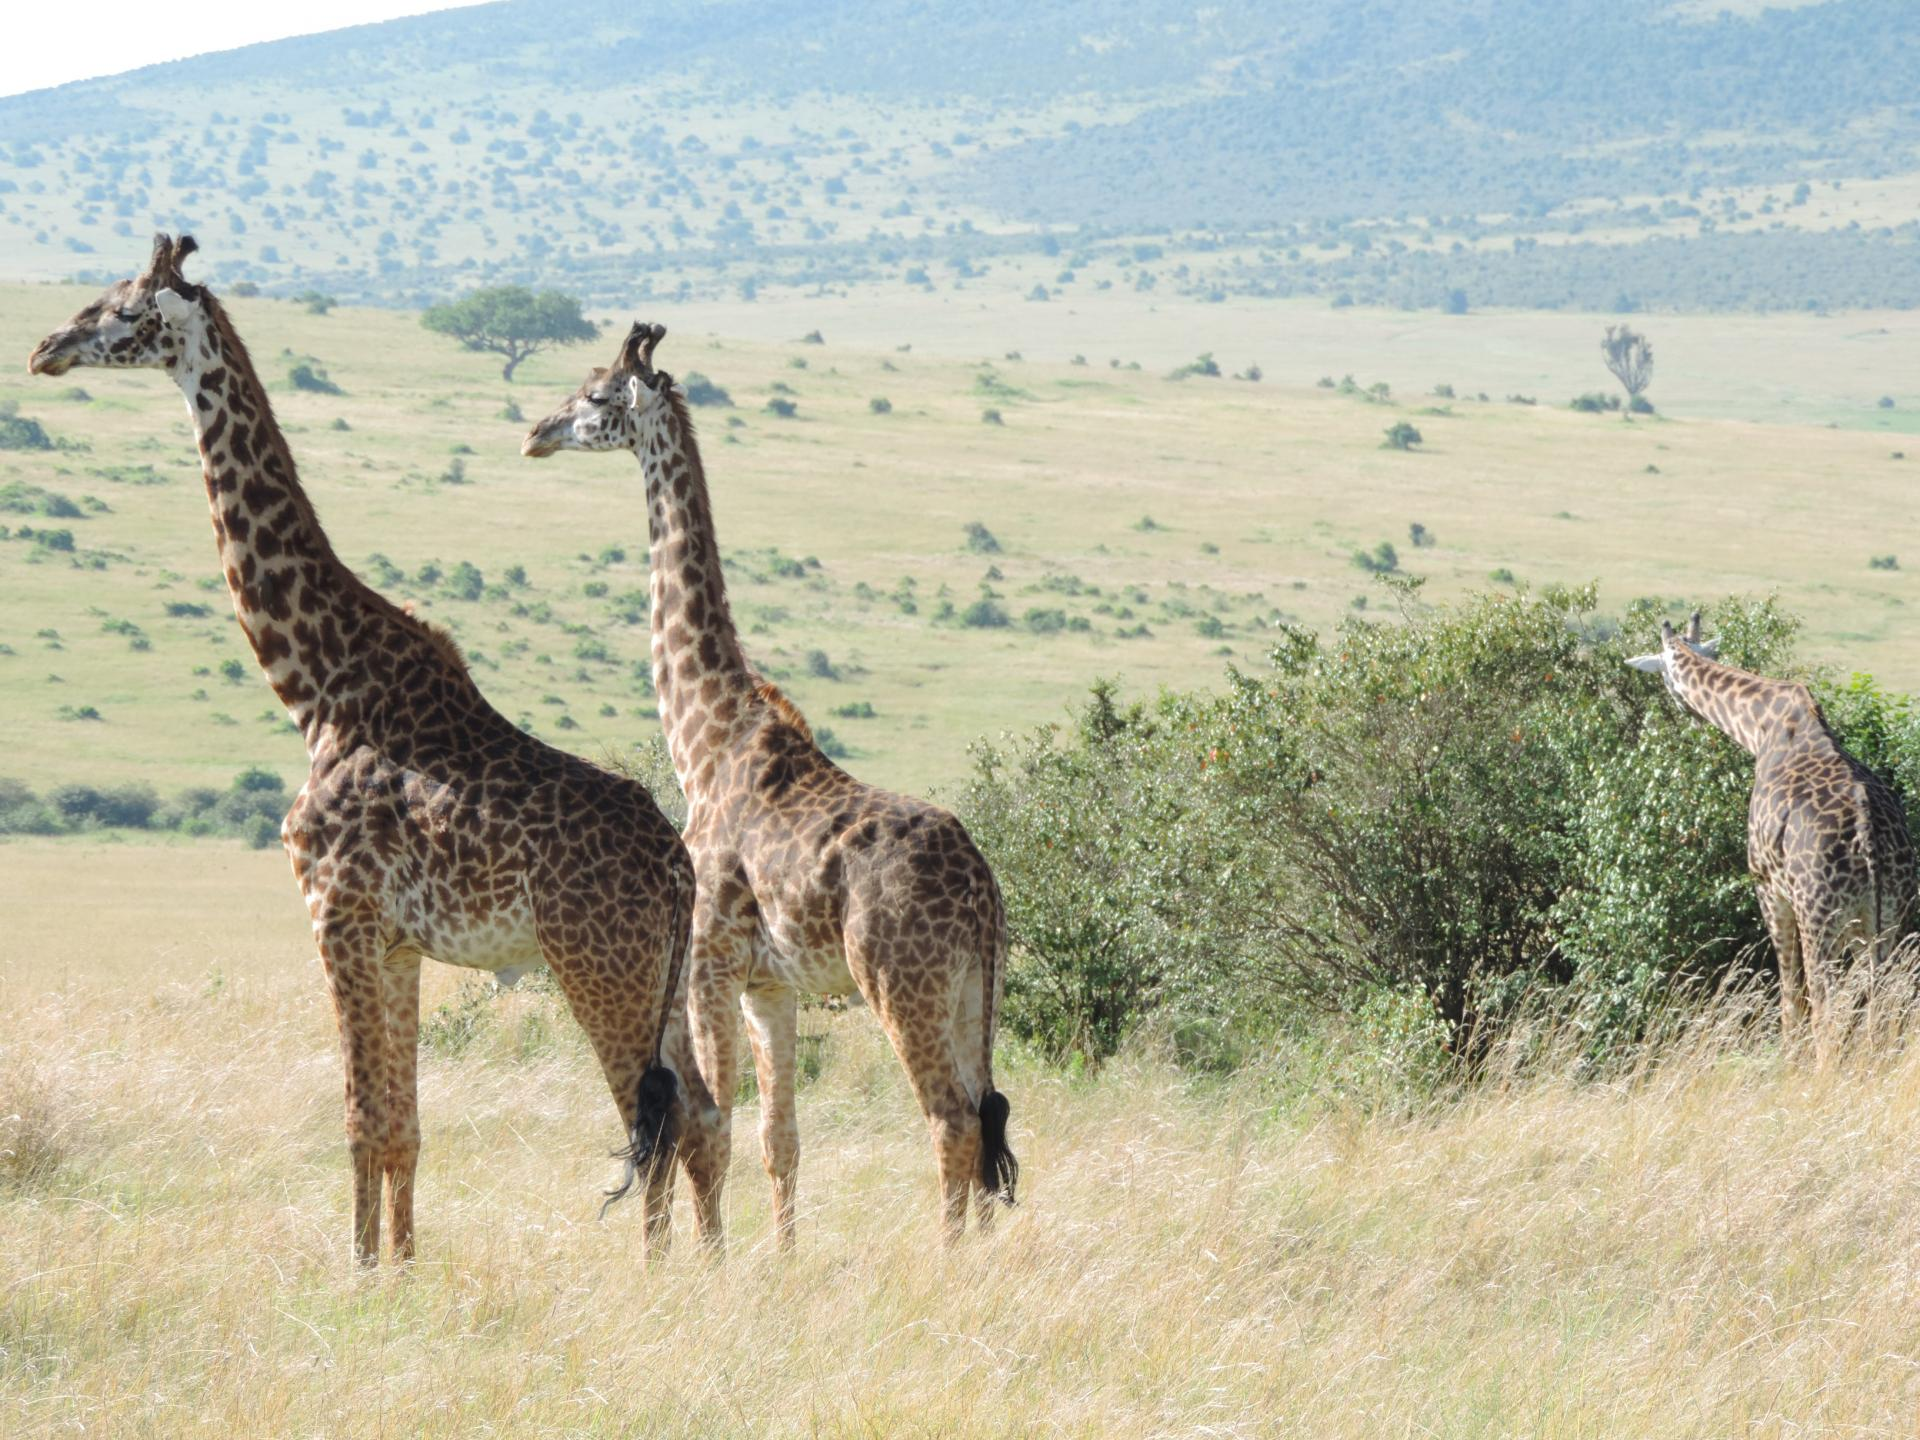 Kenya Adventure Safaris-Giraffes